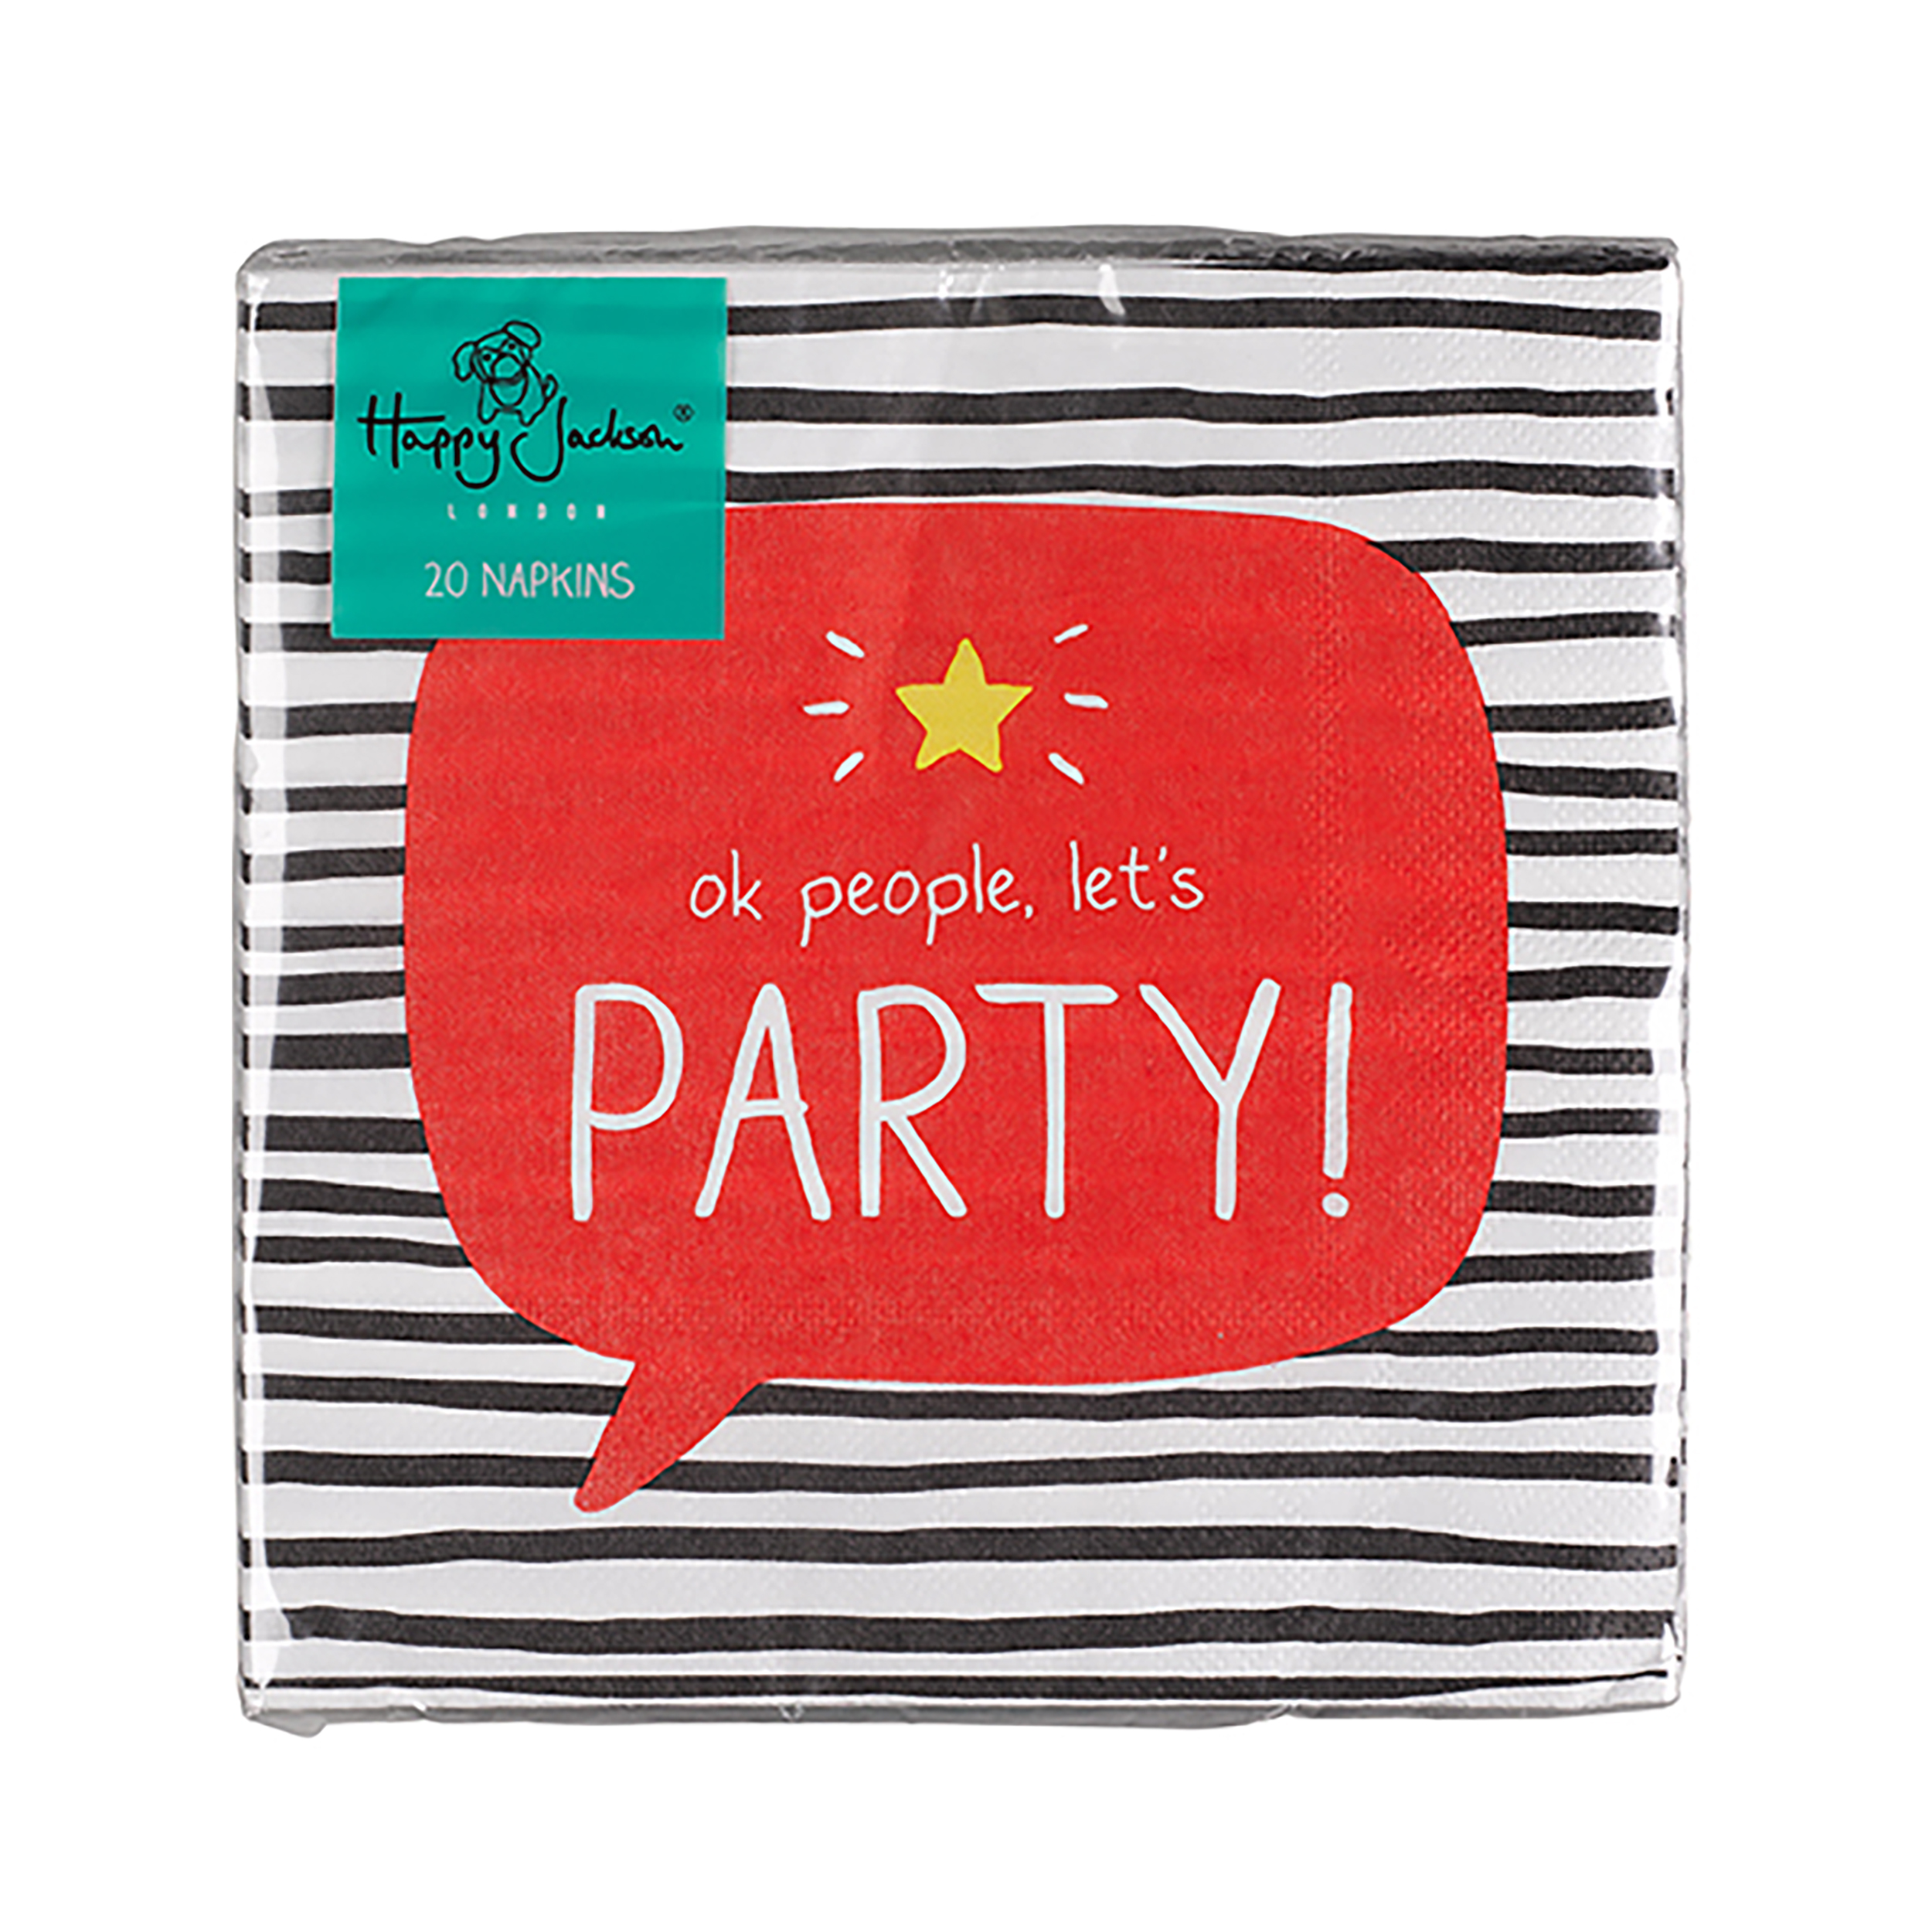 OK People Let's Party' Napkins